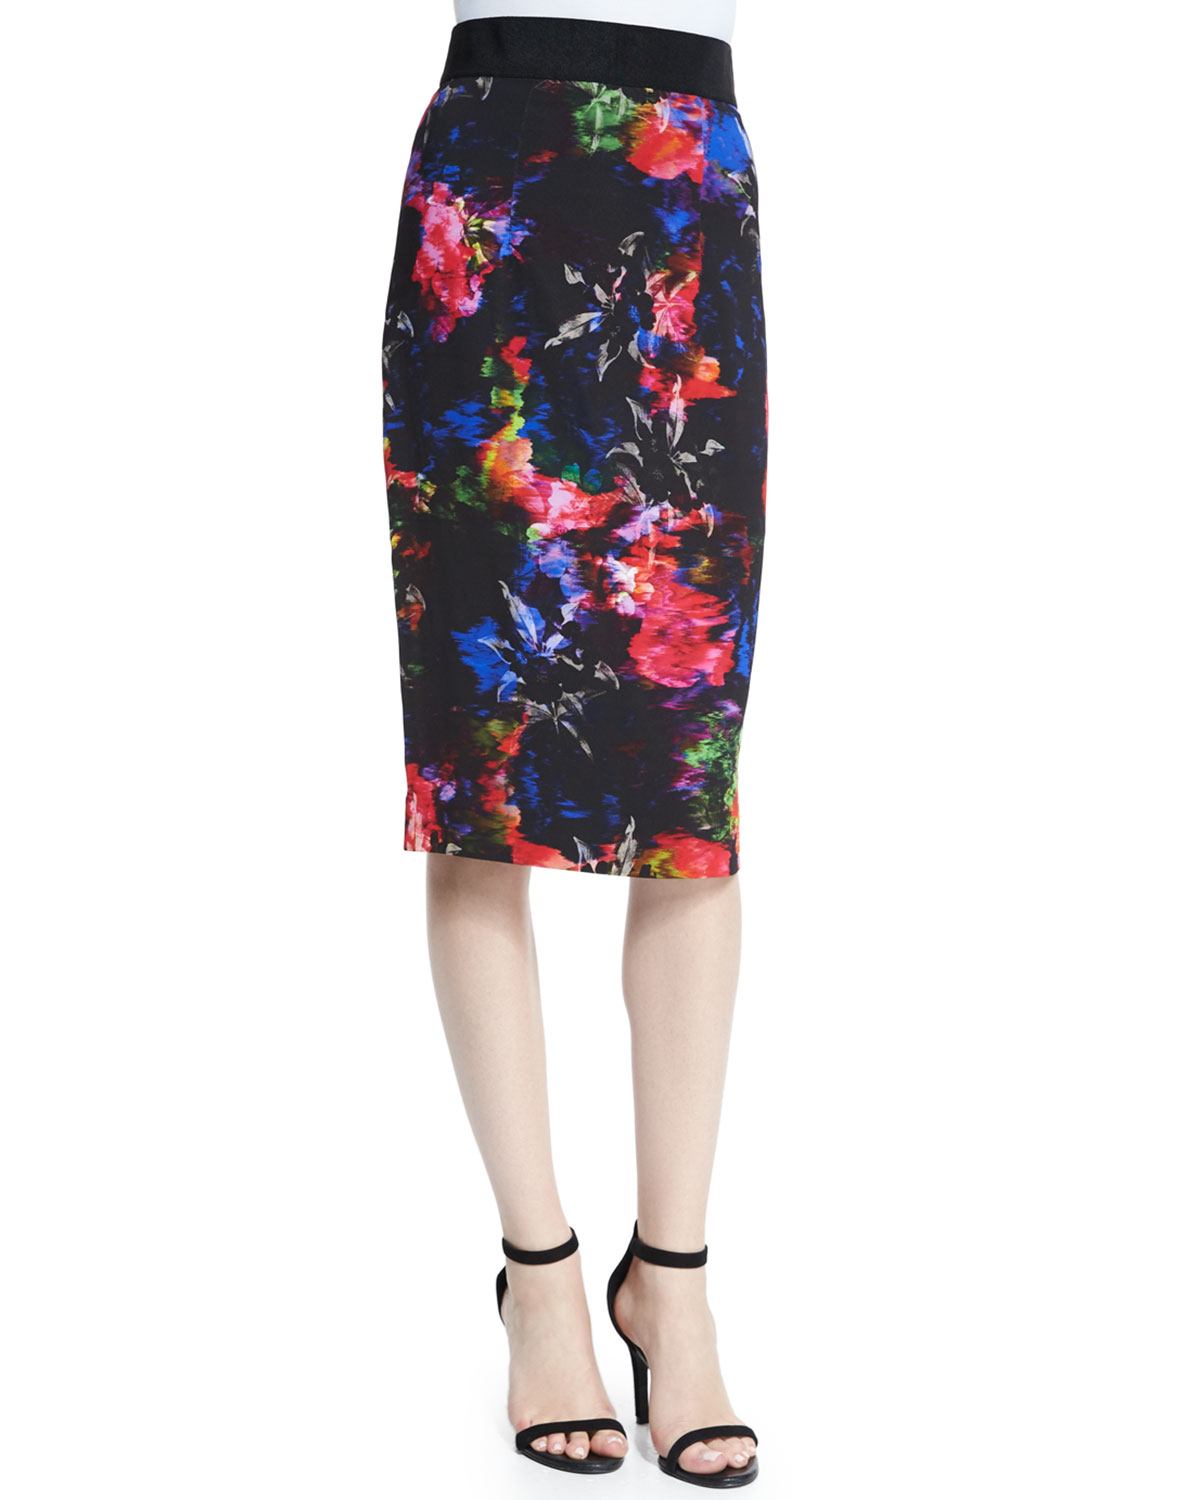 Floral-Print Pencil Skirt, Size: 2, Multi Colors - Milly